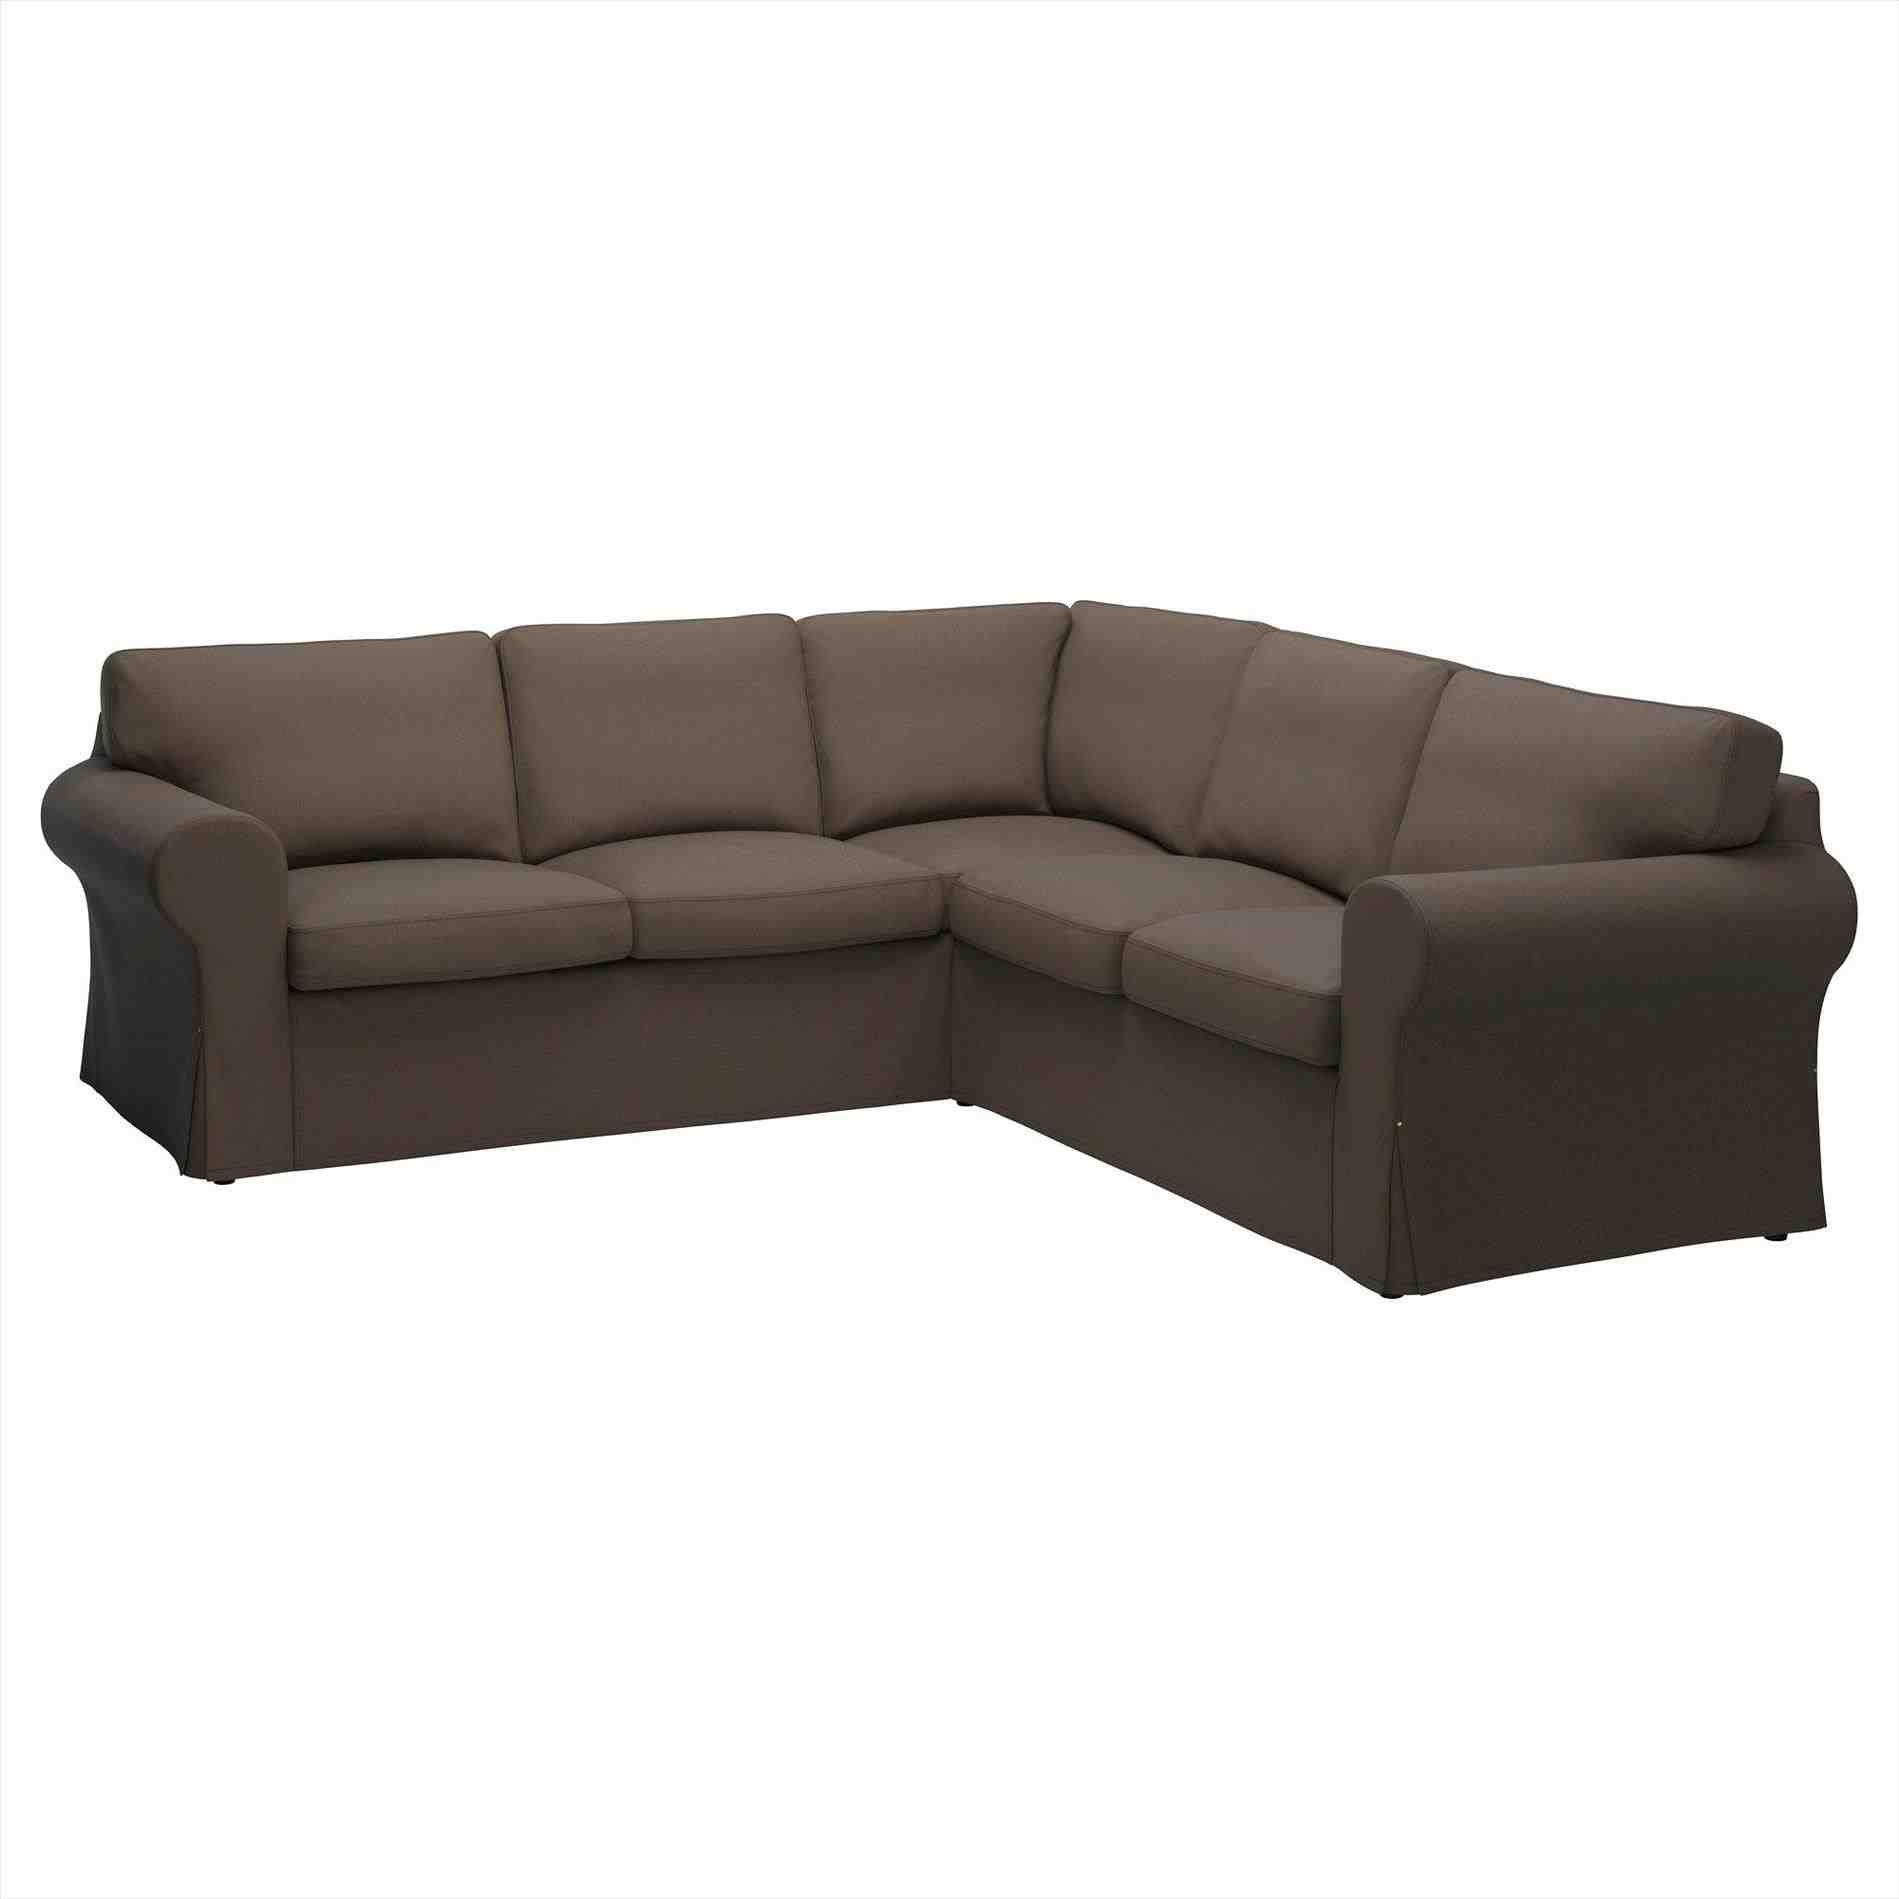 Incredible Cheap Sofa Bed Philippines Sofa Set For Philippines Home Download Free Architecture Designs Boapuretrmadebymaigaardcom